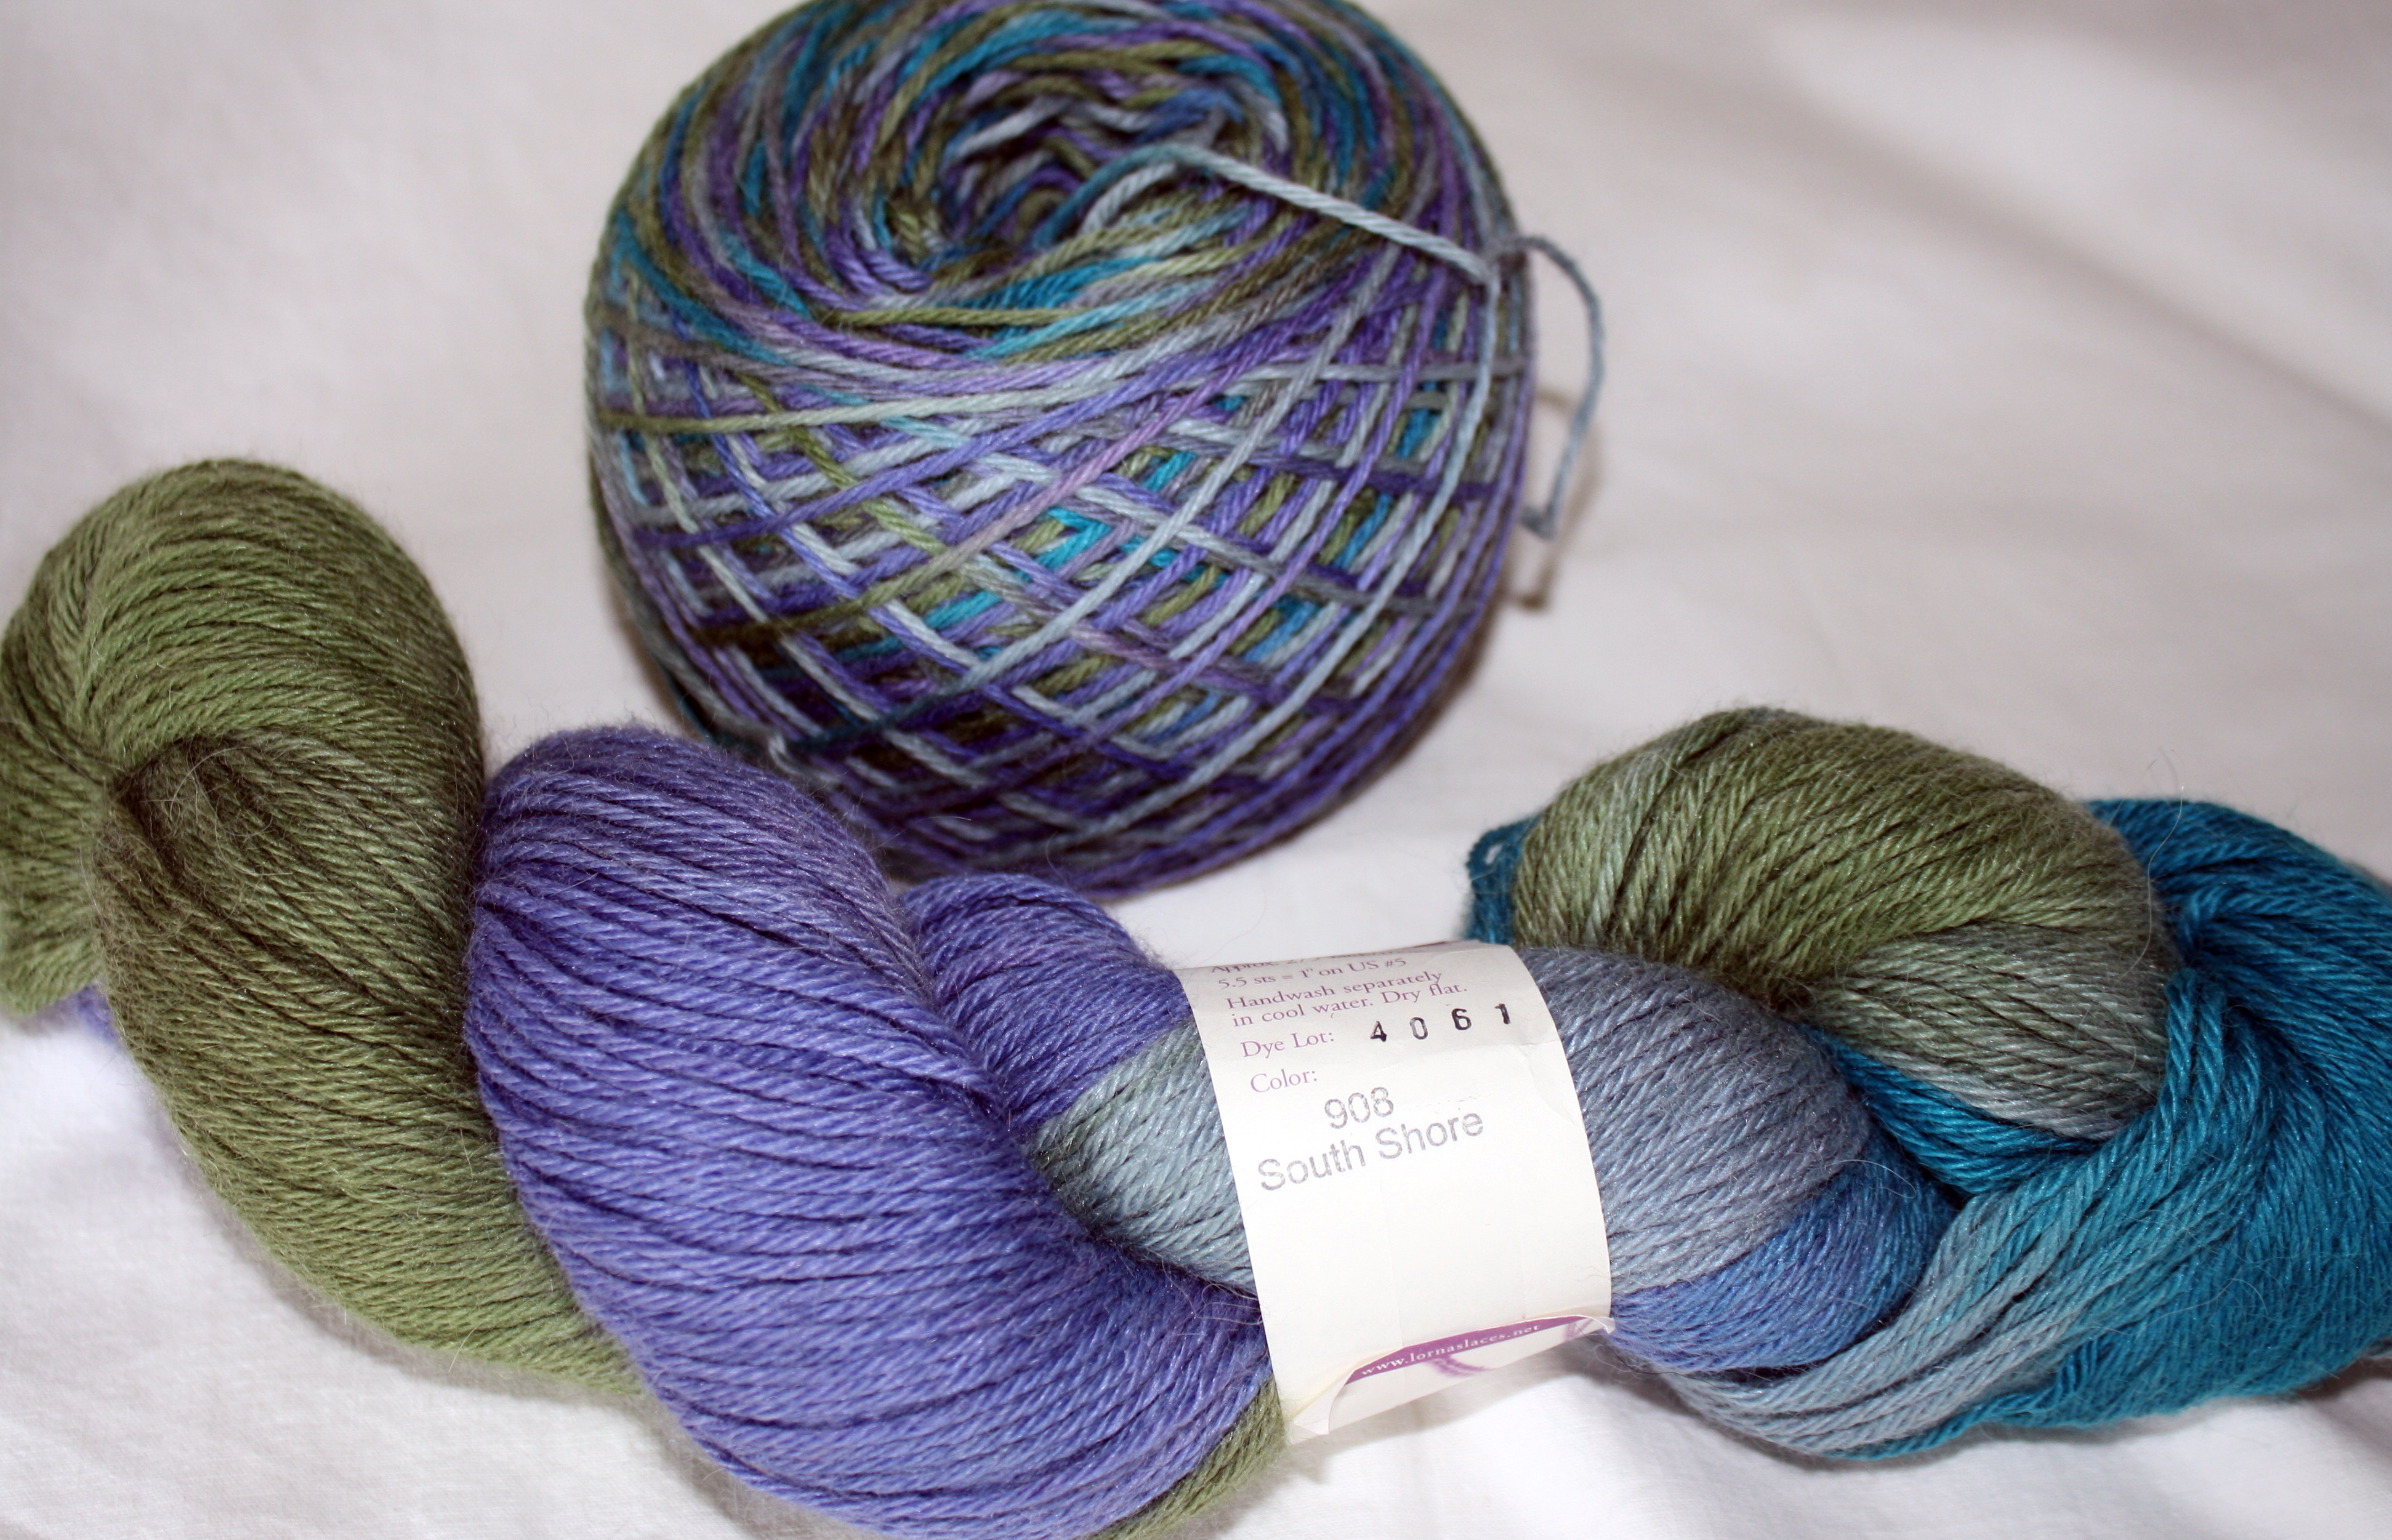 Hand Dyed Yarn : ... yarn gives a much better idea of how your hand-dyed yarn will look